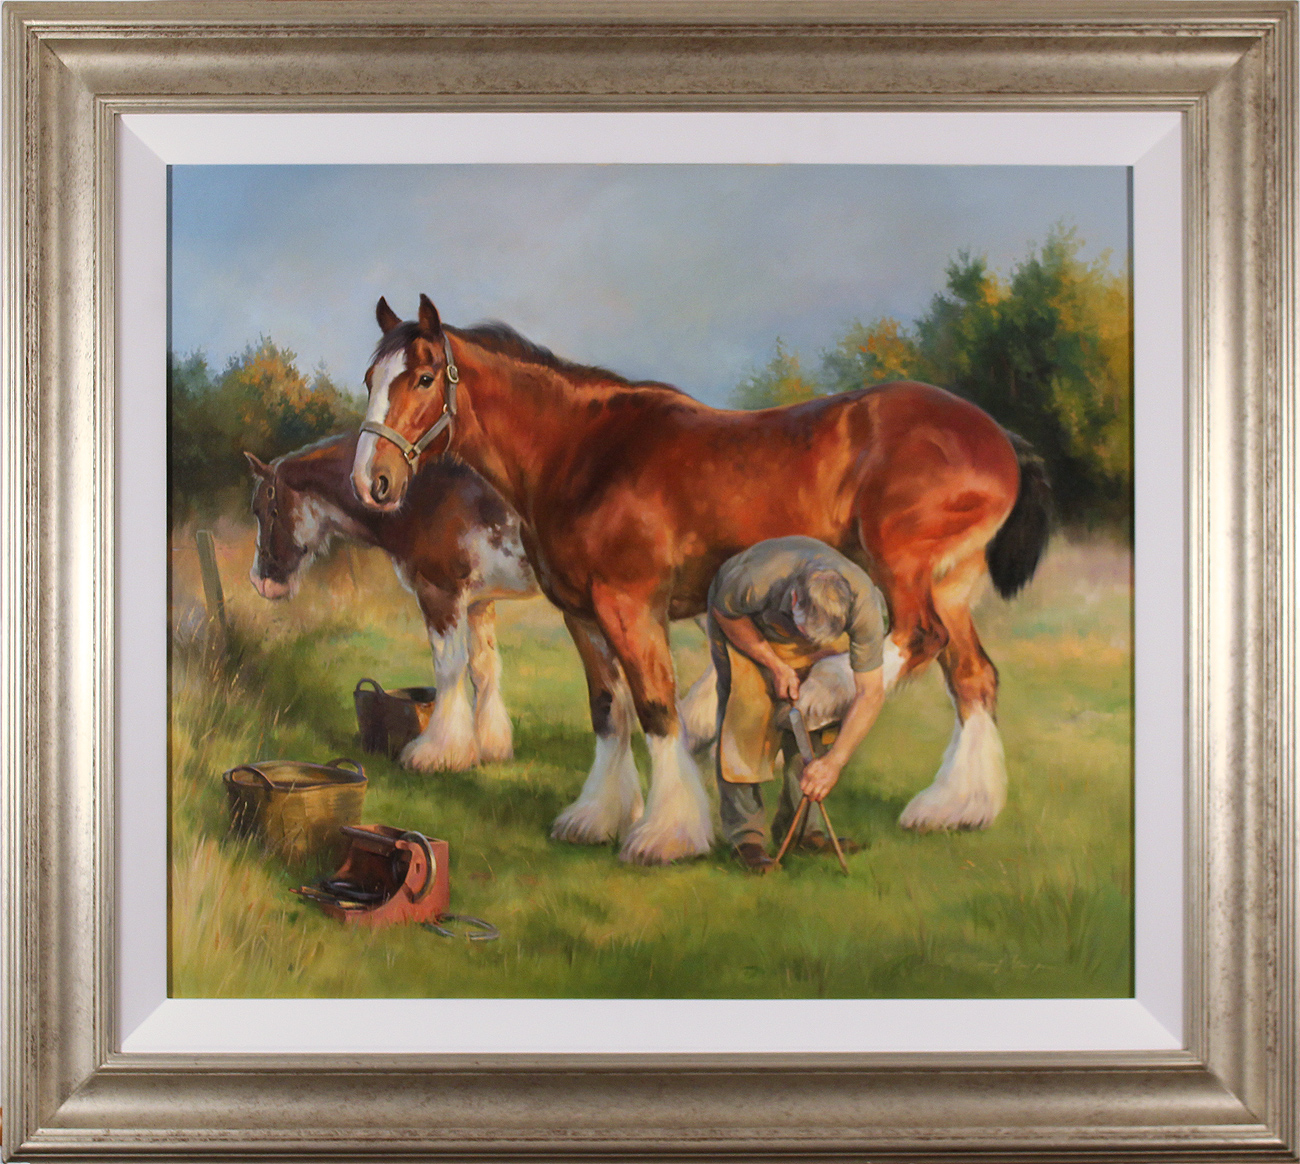 Jacqueline Stanhope, Original oil painting on canvas, The Farrier. Click to enlarge